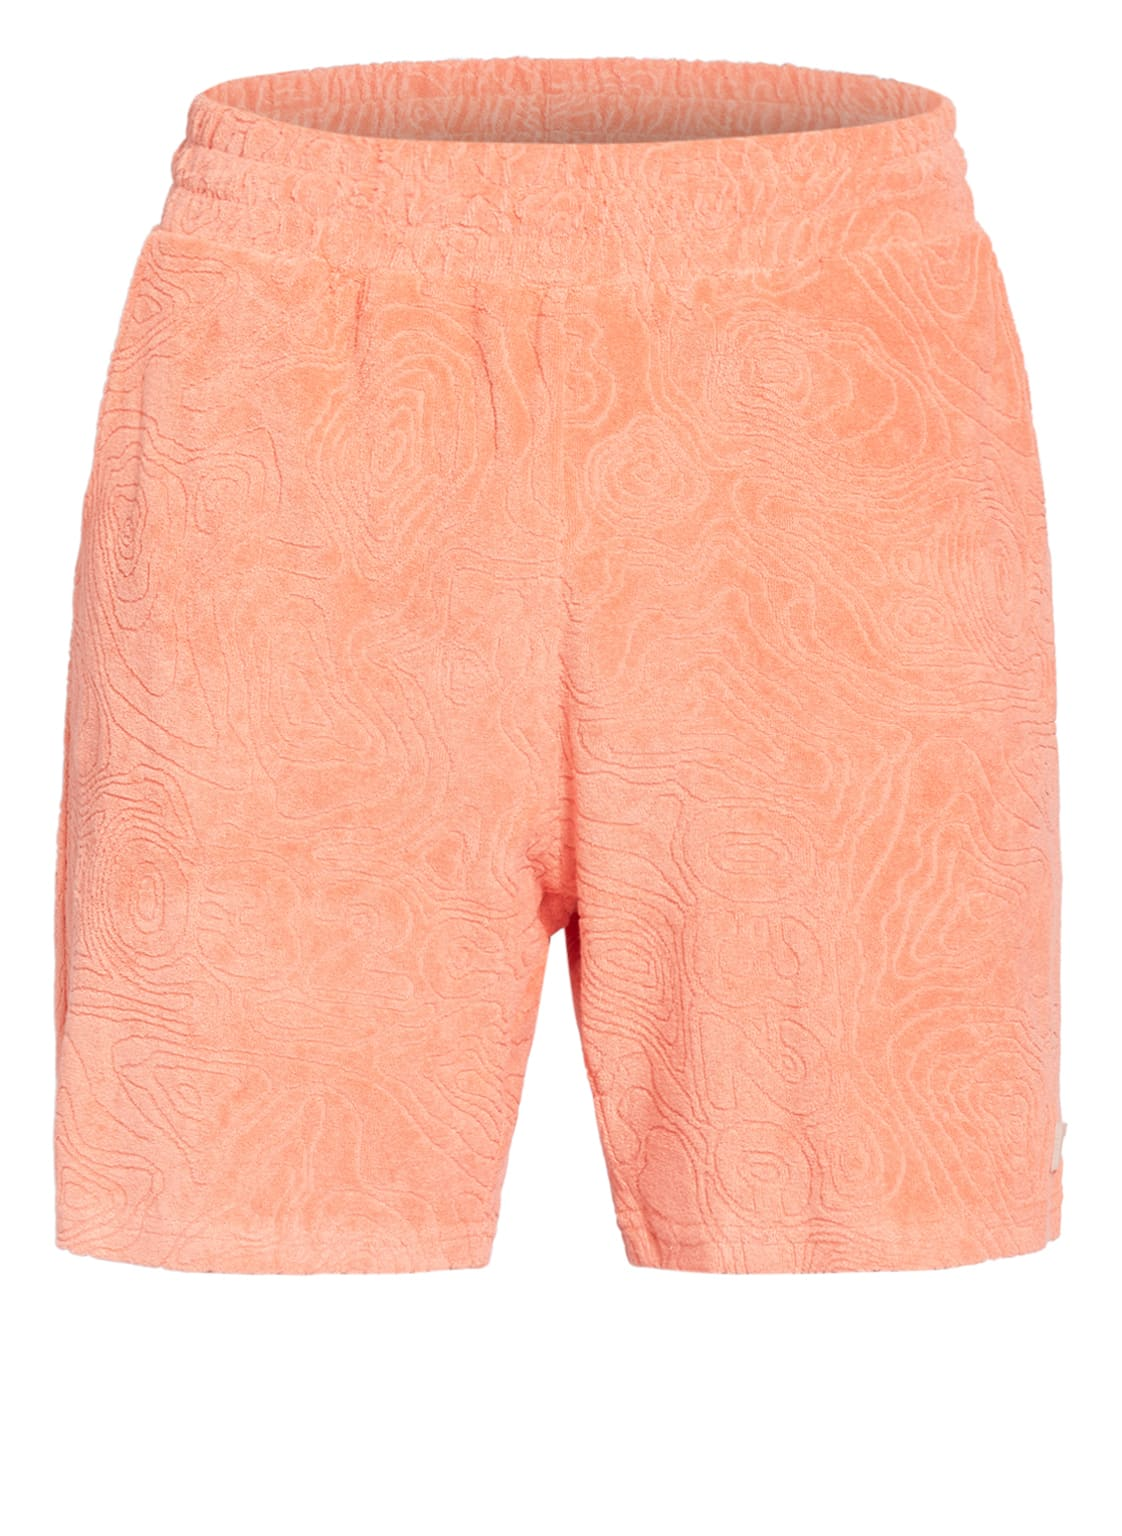 Image of 032c Frottee-Shorts Topos orange